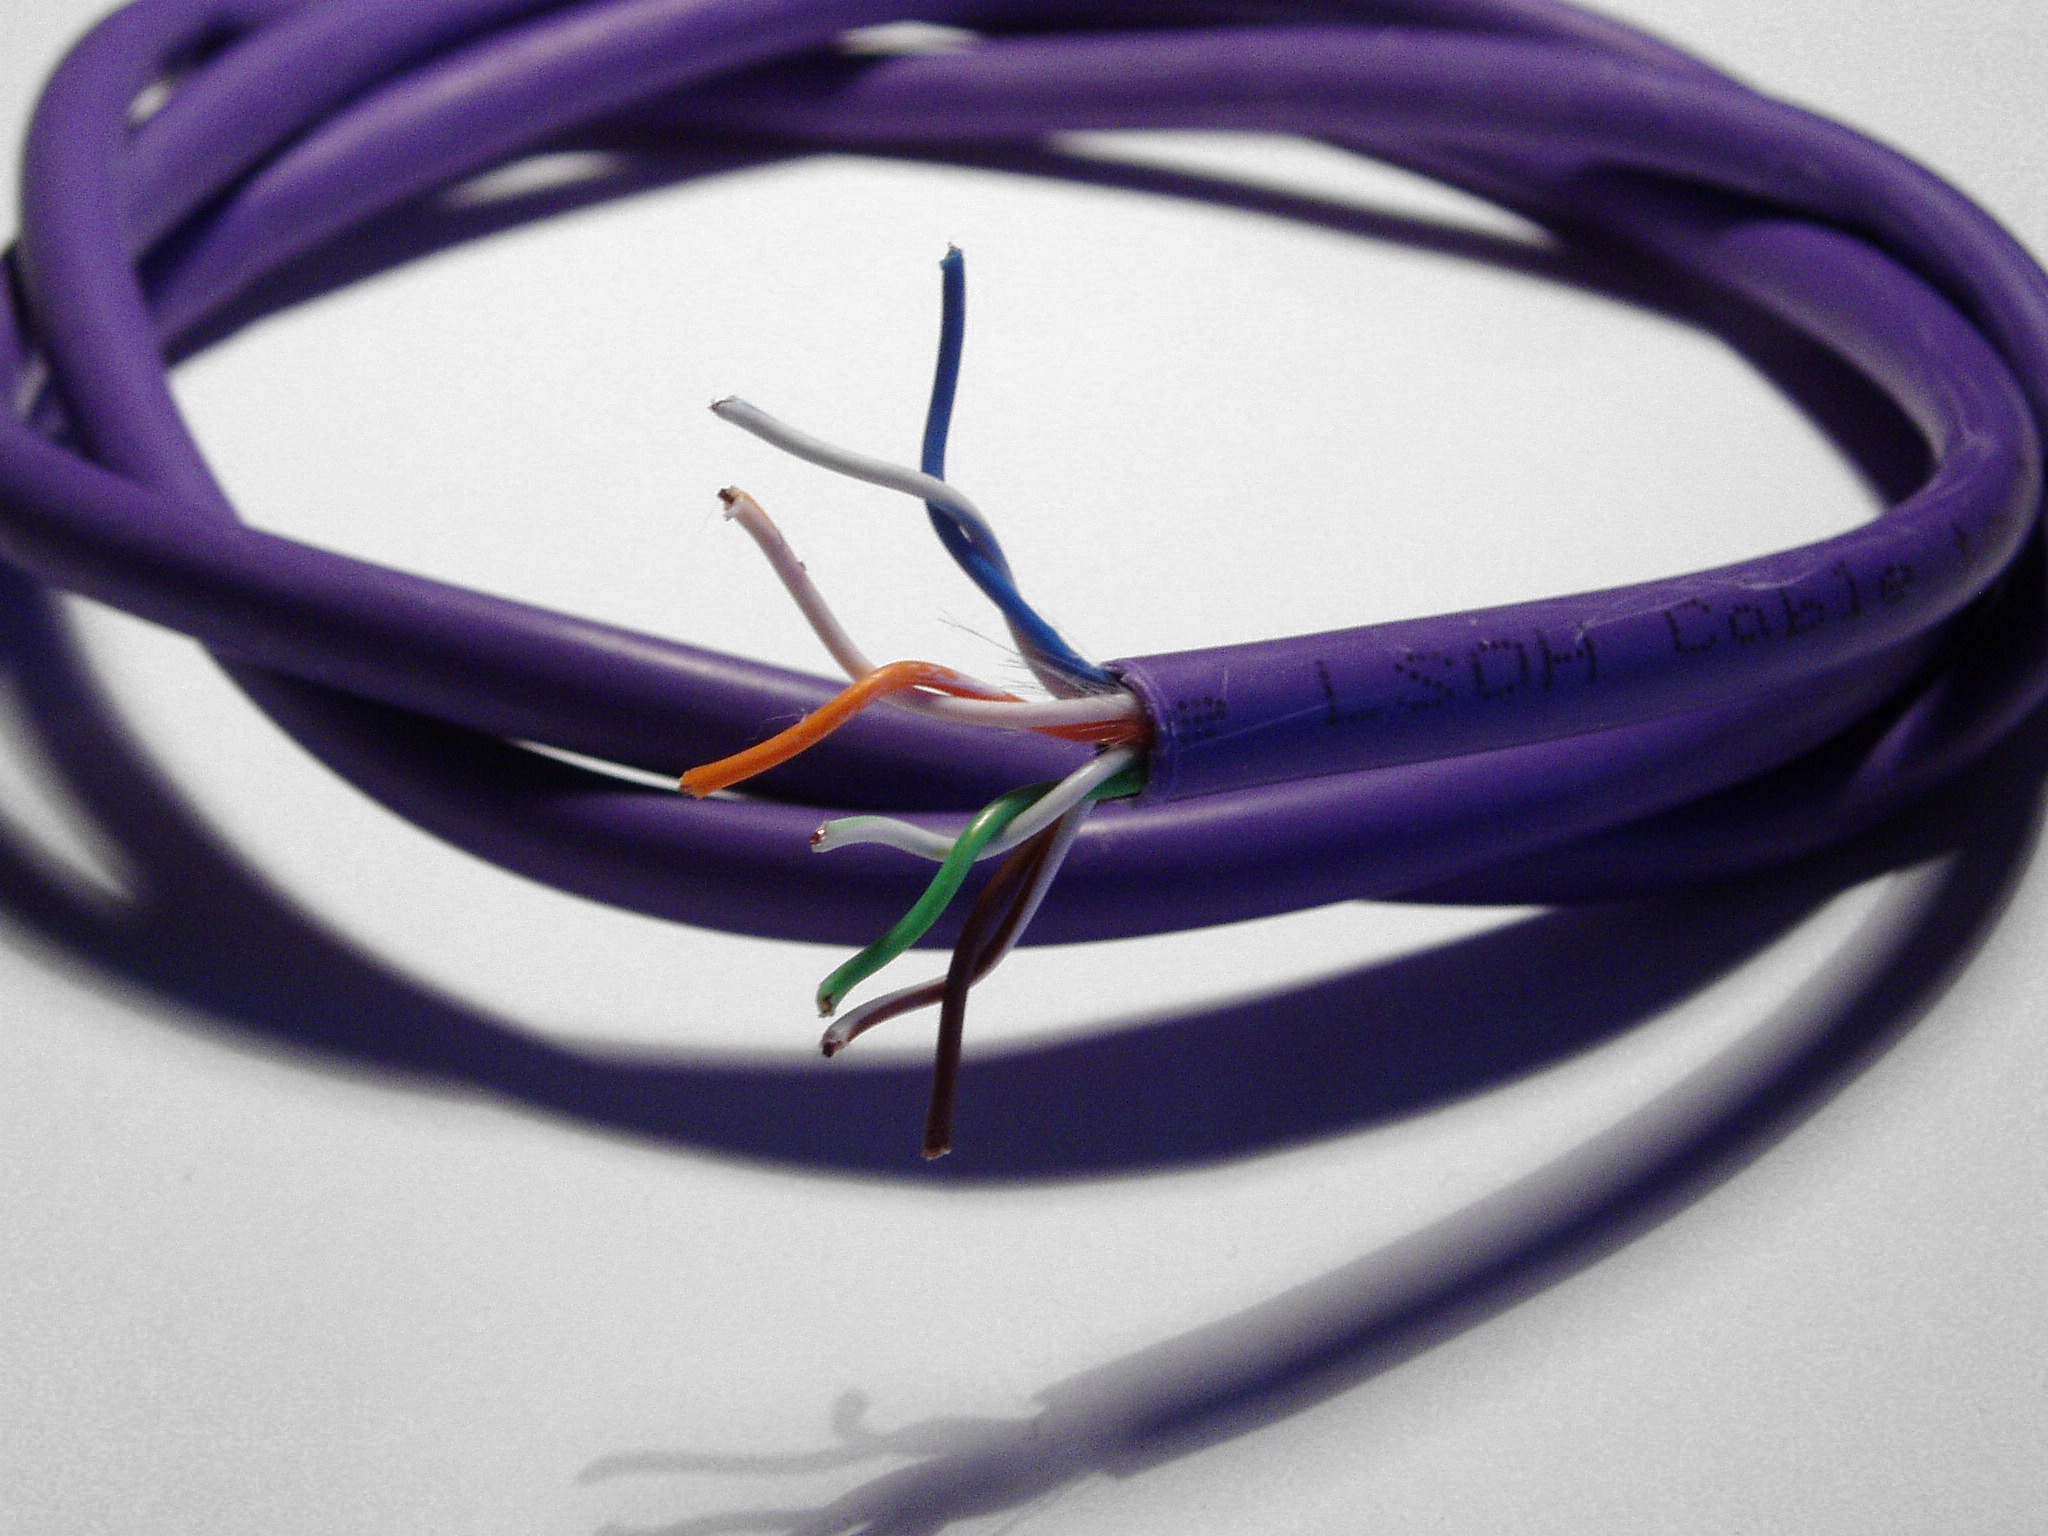 Category 5 Cable Wikipedia Straight Through Network Wiring